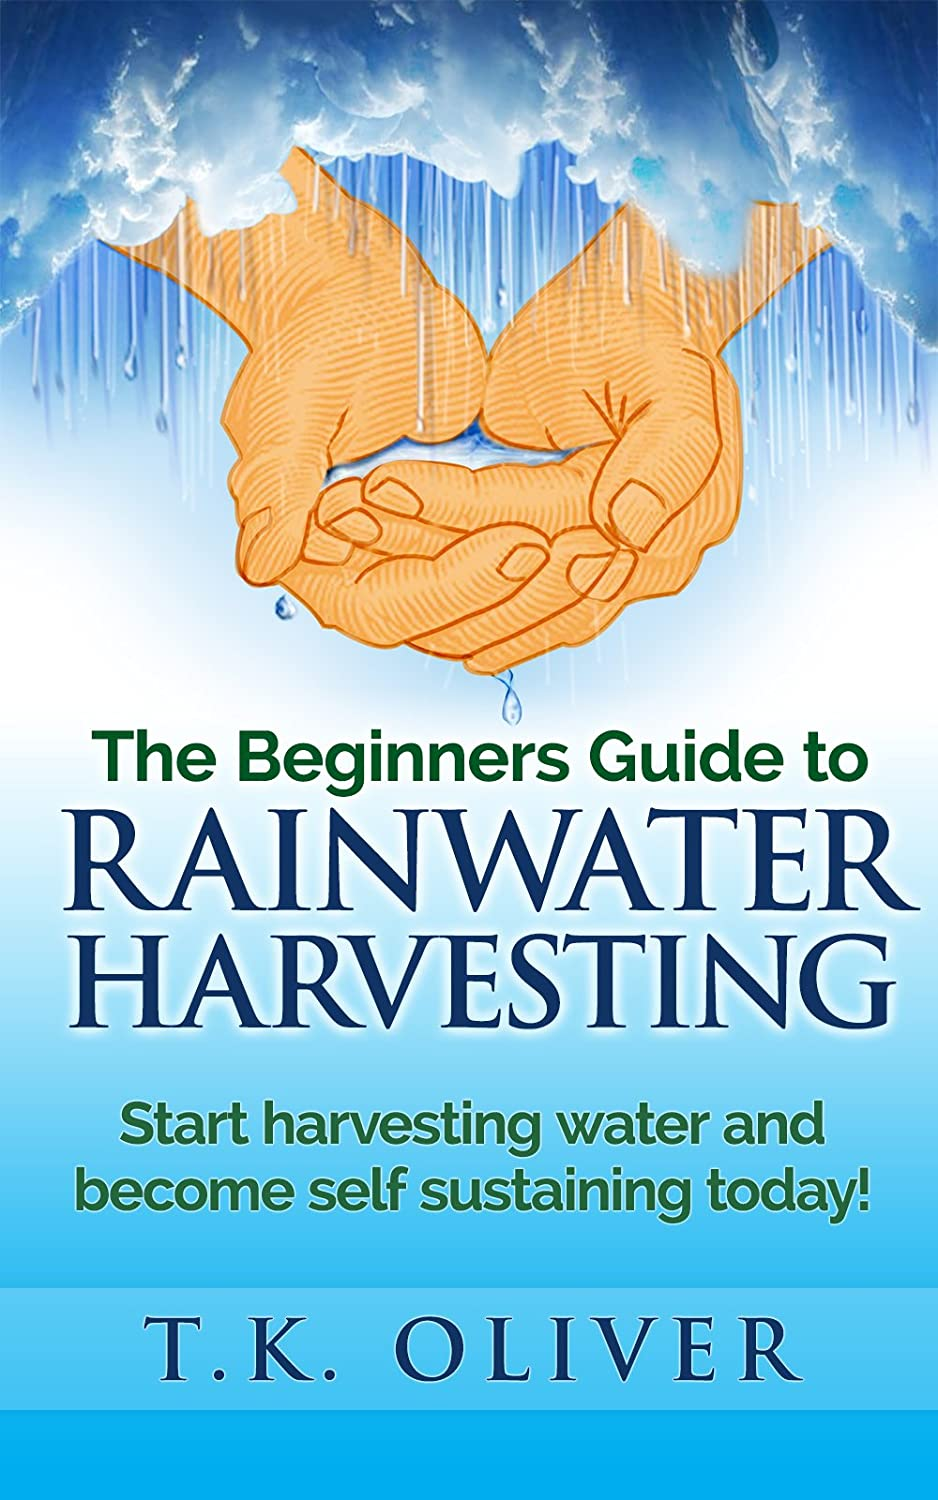 http://www.amazon.com/The-Beginners-Guide-Rainwater-Harvesting-ebook/dp/B00QFKWE2Q/ref=as_sl_pc_ss_til?tag=lettfromahome-20&linkCode=w01&linkId=GWFEZIFIZZNX7QJT&creativeASIN=B00QFKWE2Q